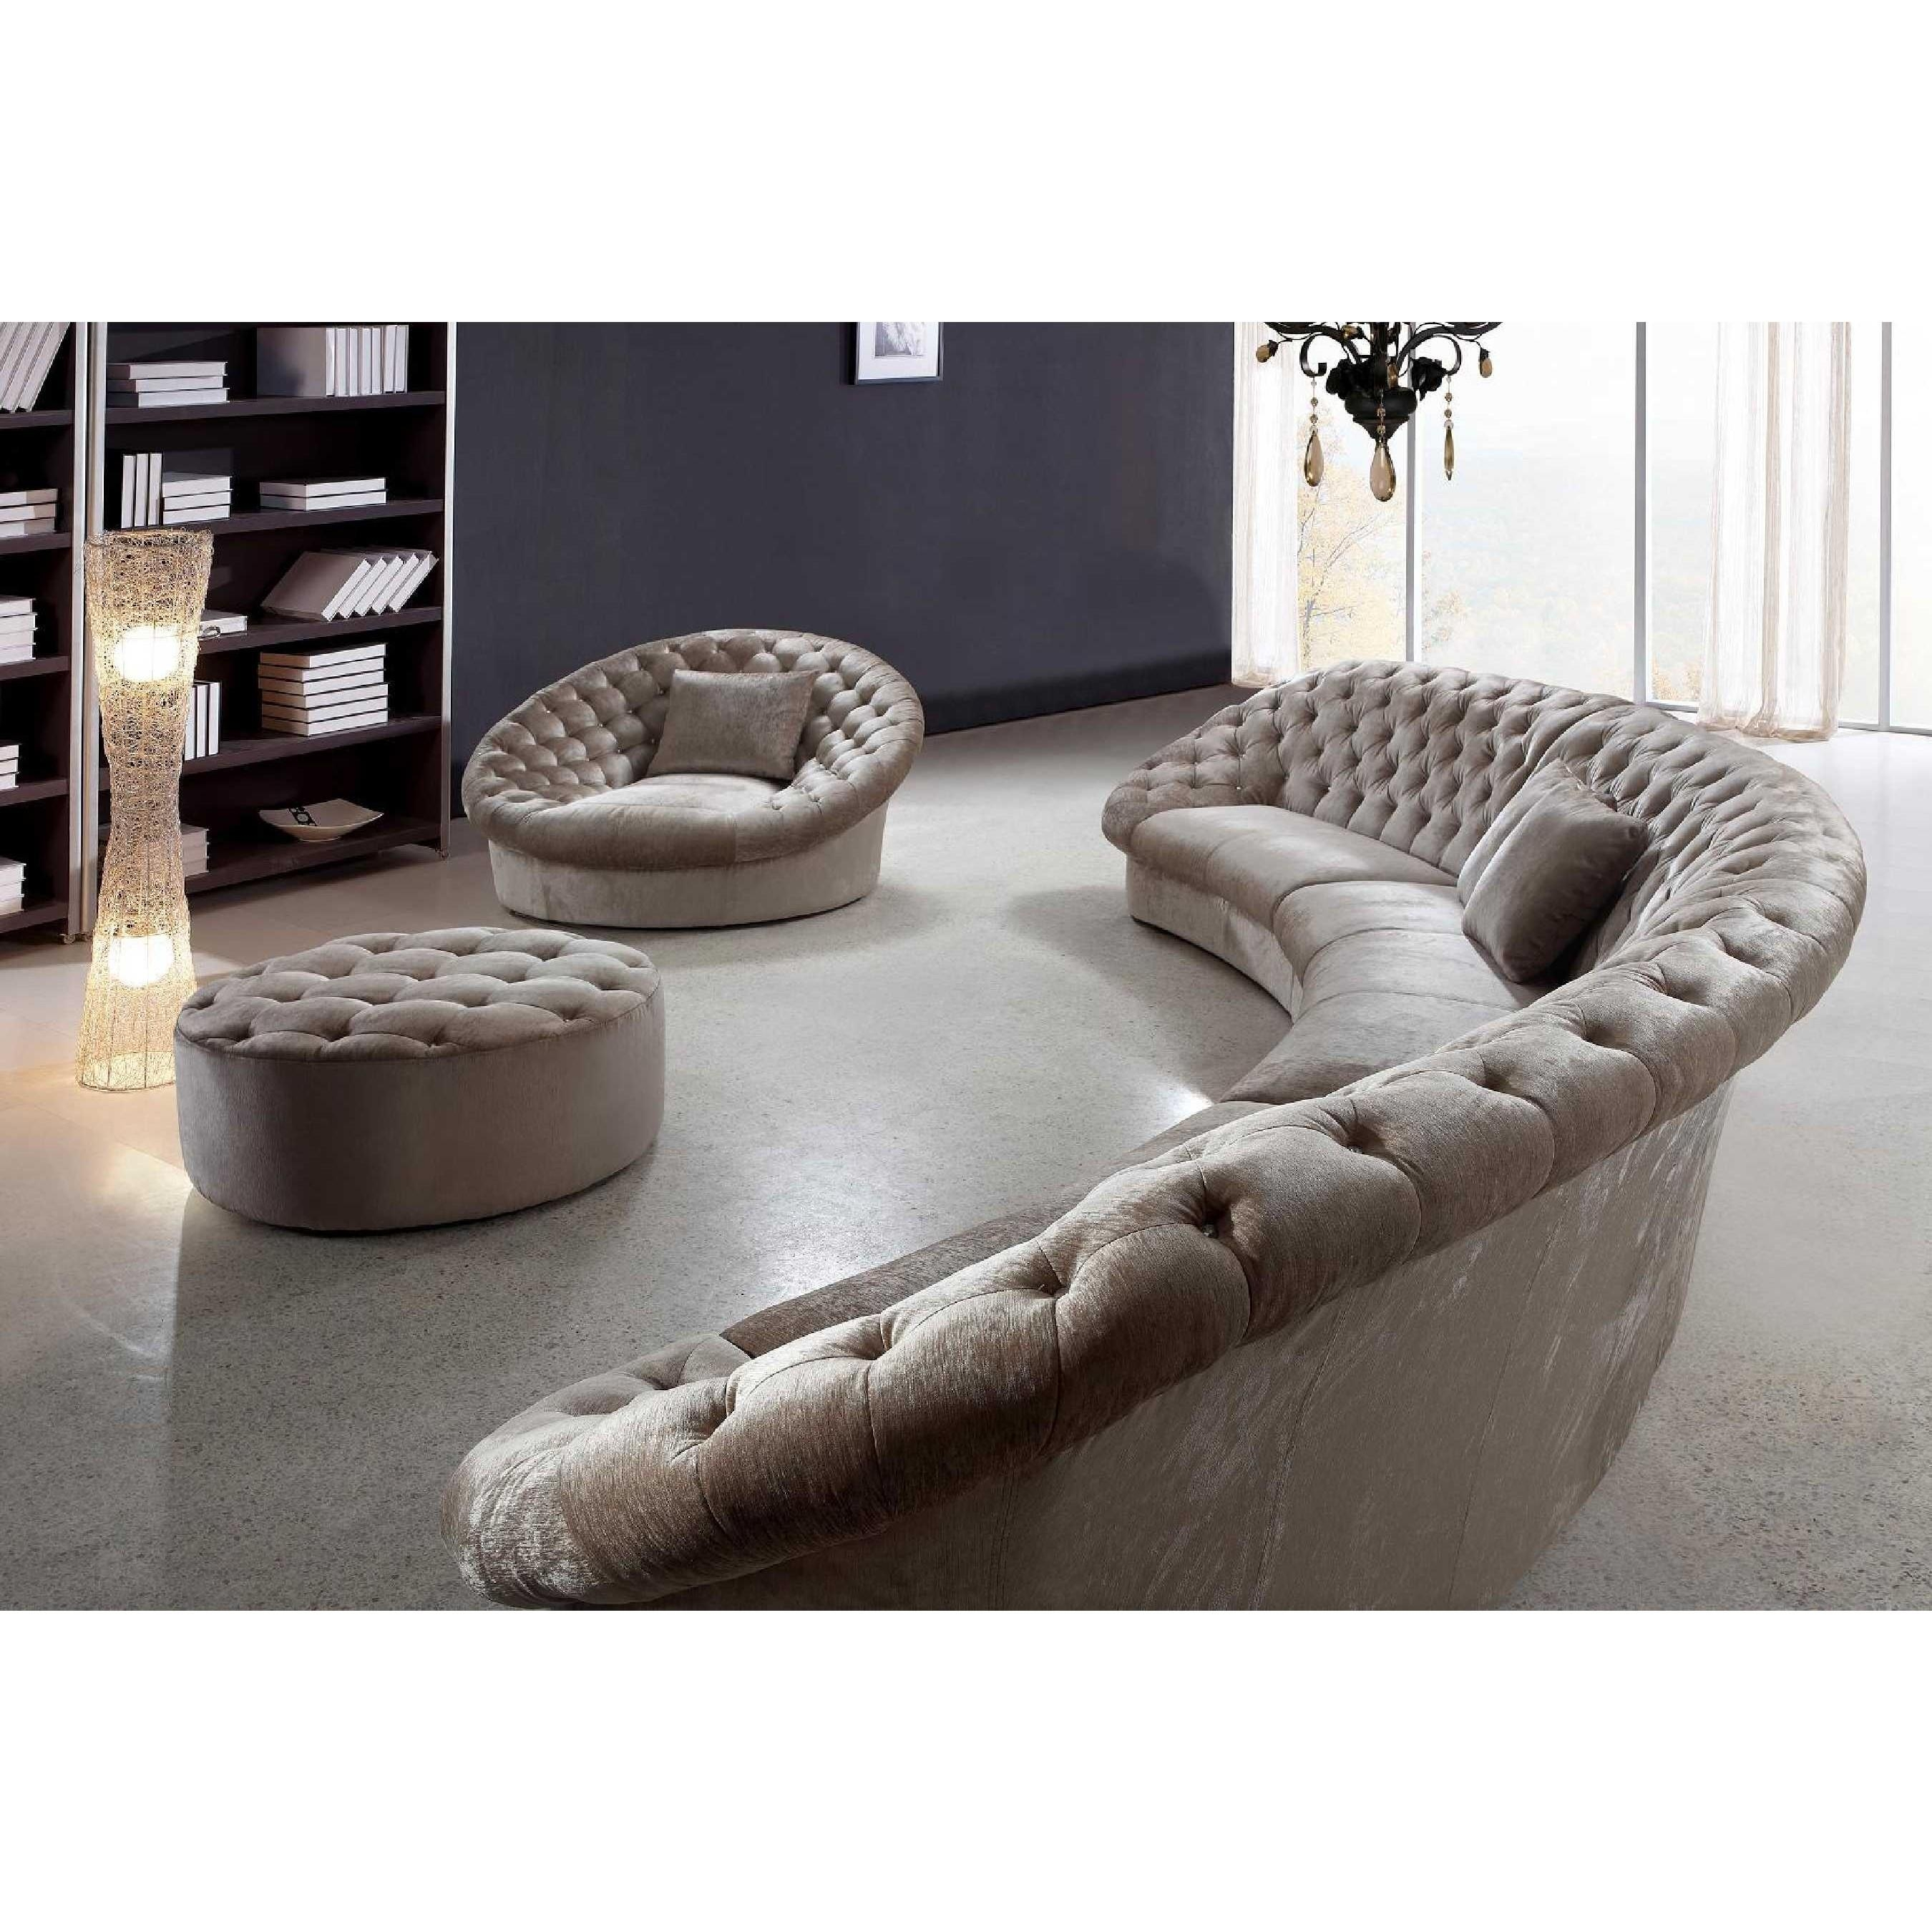 Round Sofa Chair Pinterest | Tehranmix Decoration Pertaining To Circular Sofa Chairs (View 9 of 20)